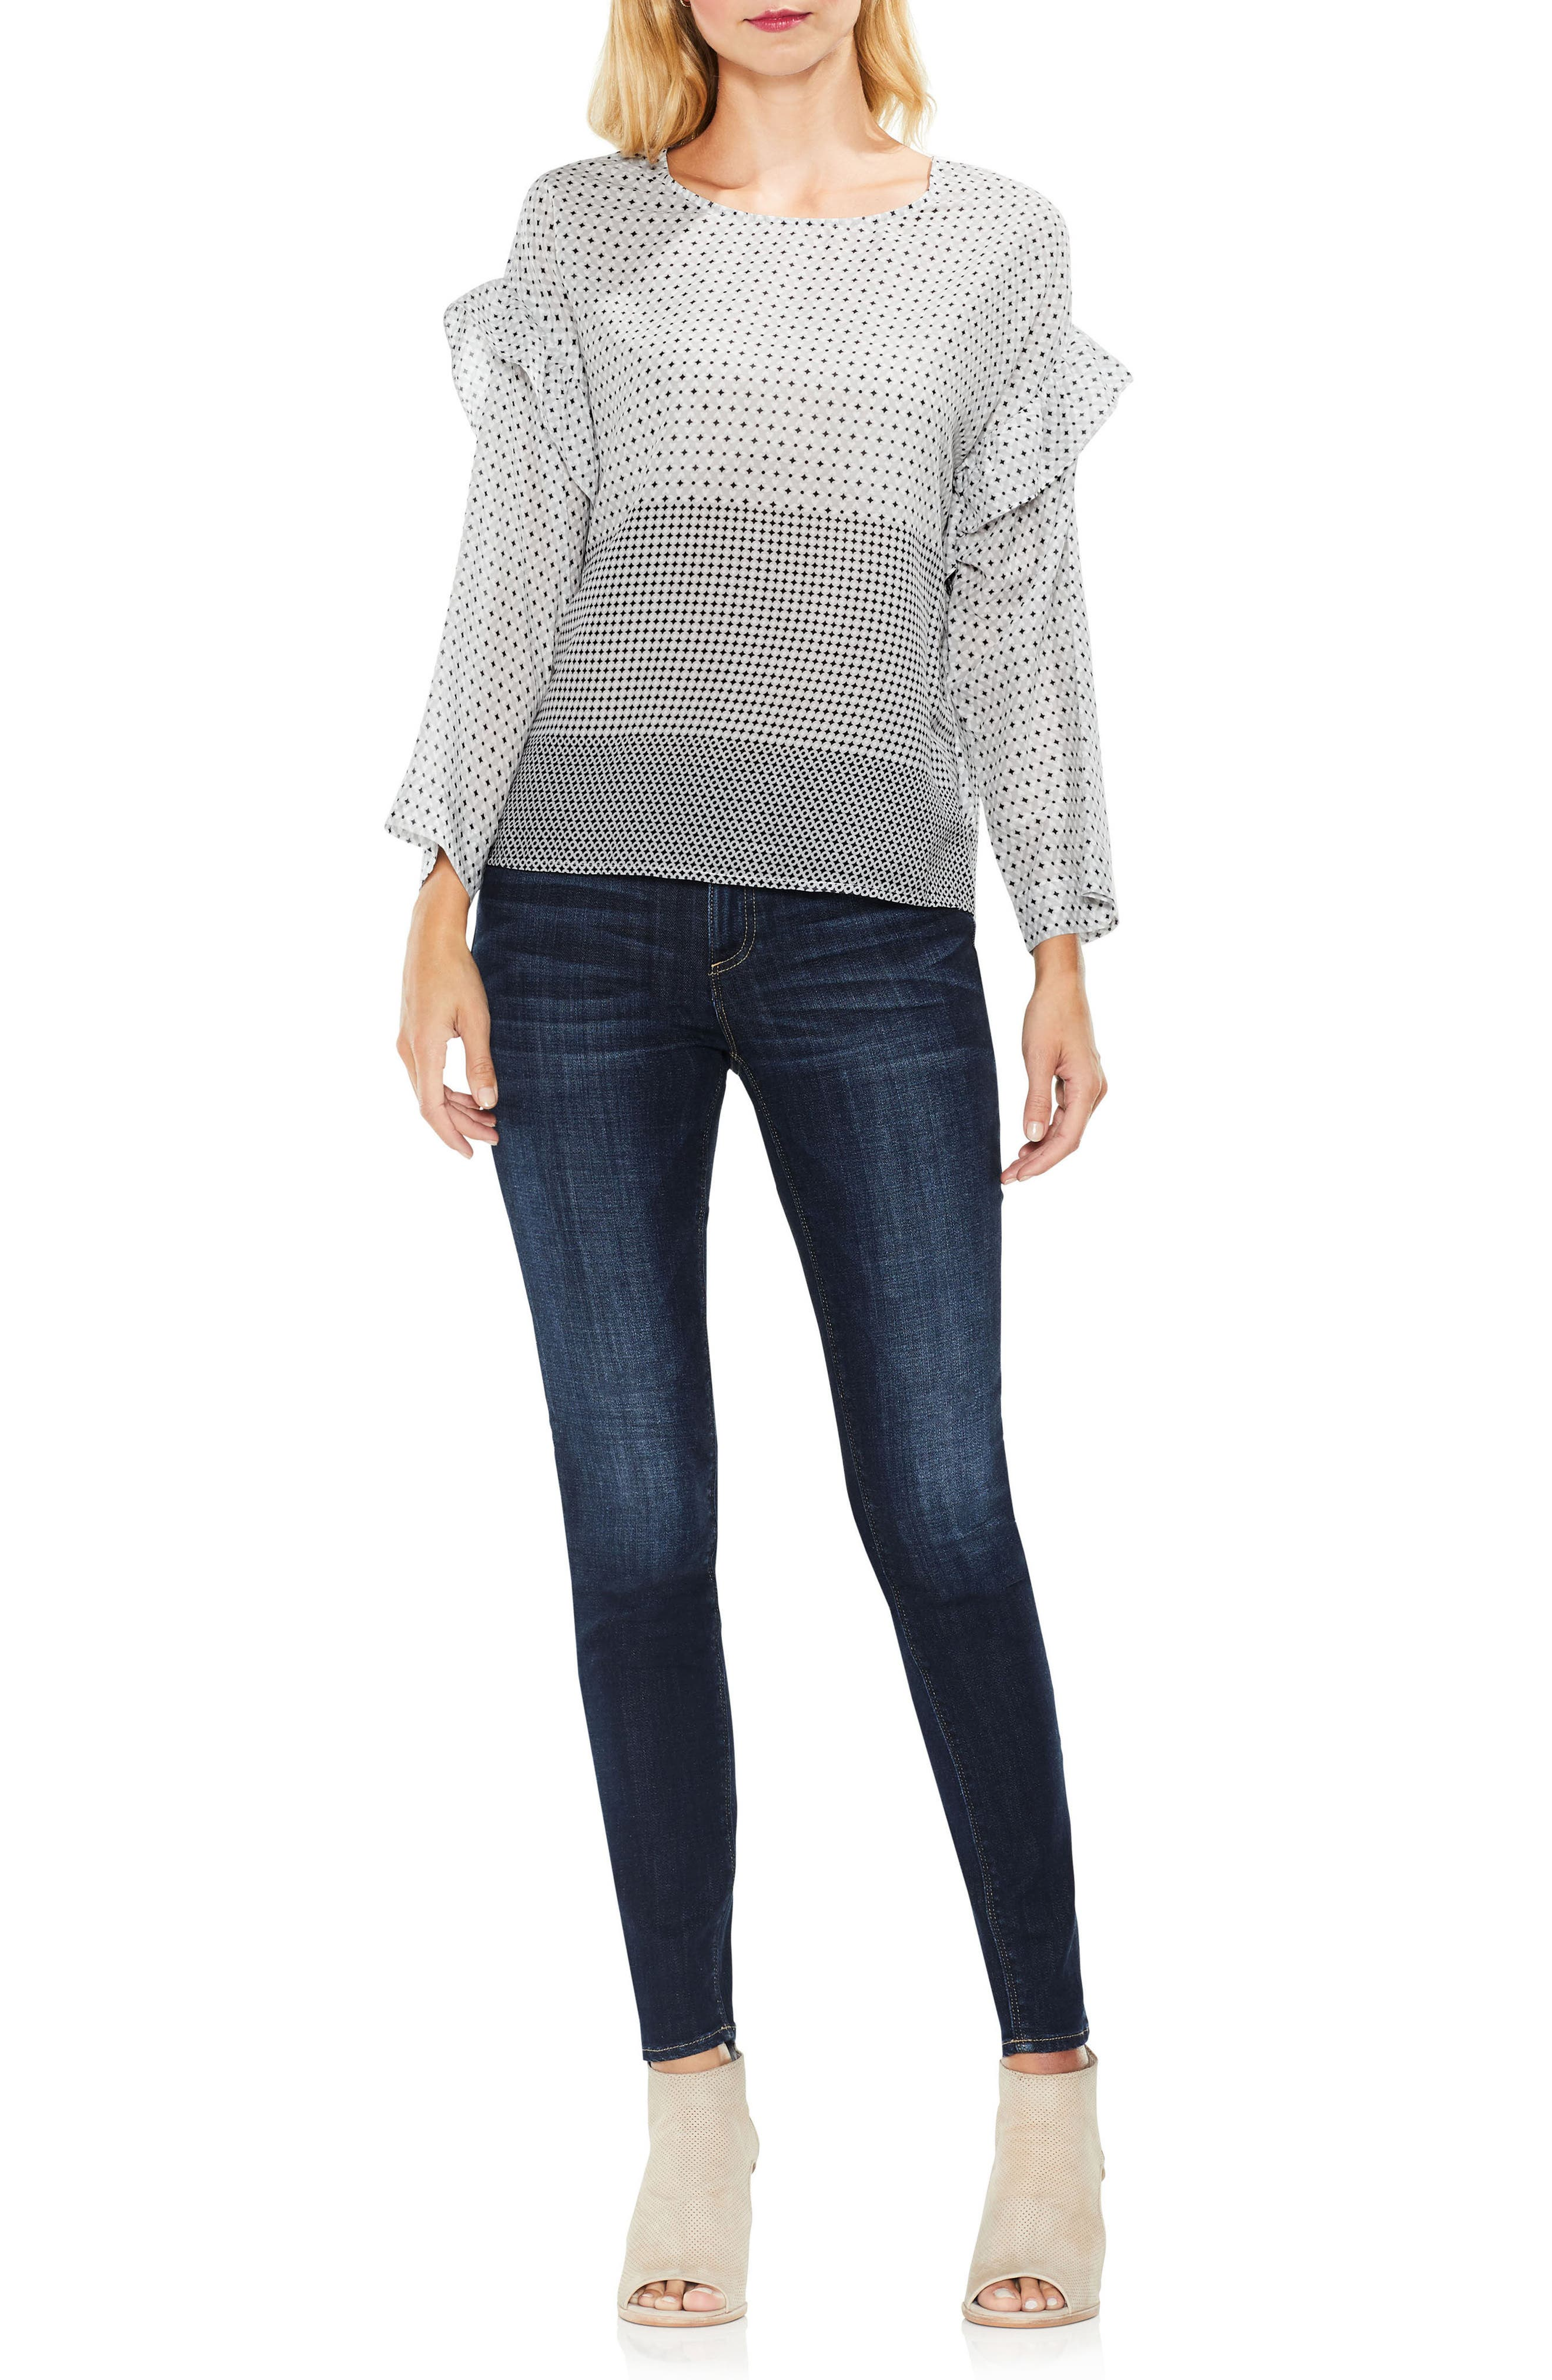 Two by VInce Camuto Quiet Tile Border Ruffle Top,                             Alternate thumbnail 4, color,                             063